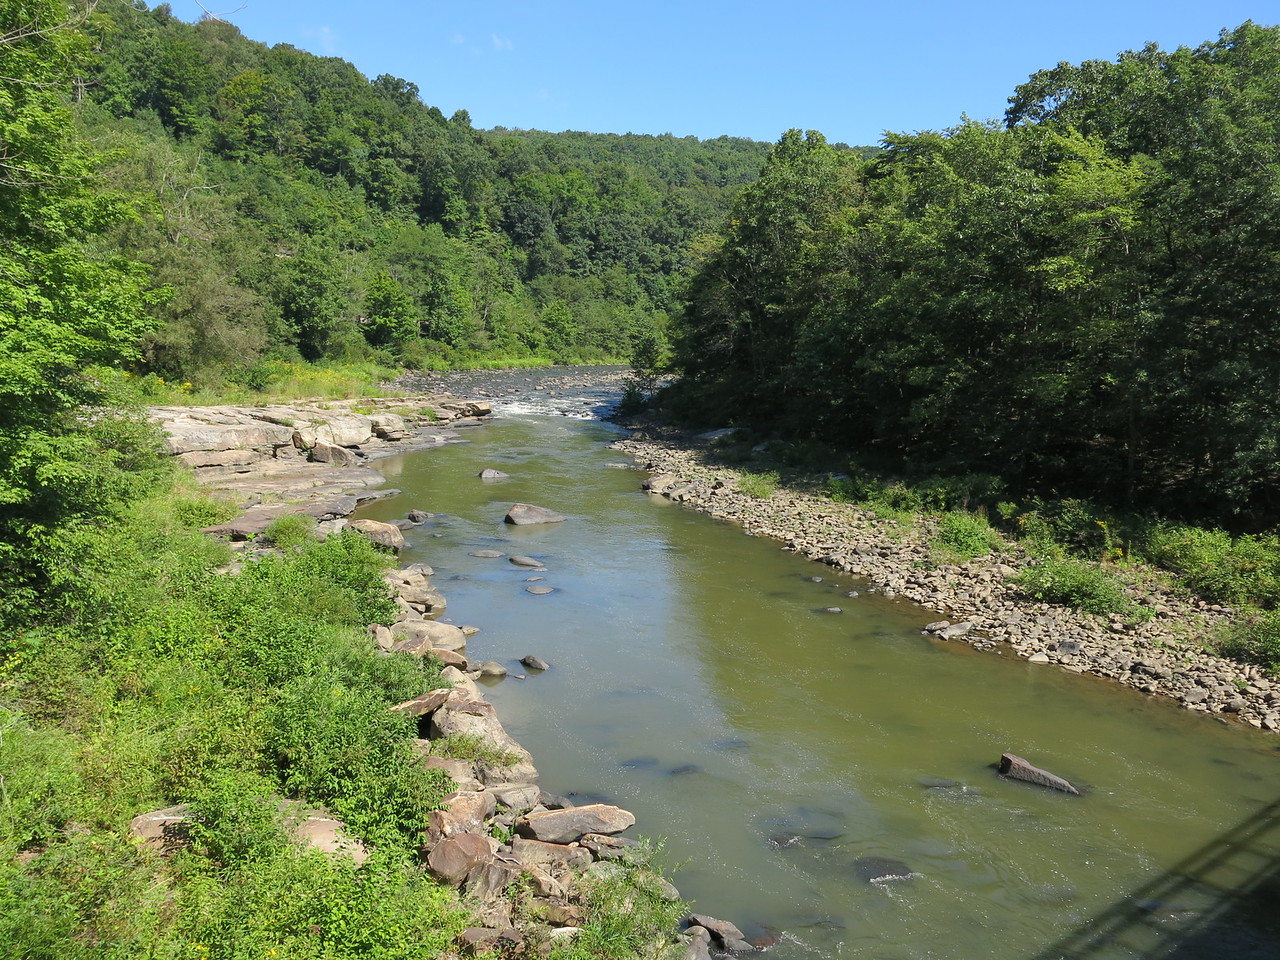 Casselman River in an upstream view from the Low Bridge